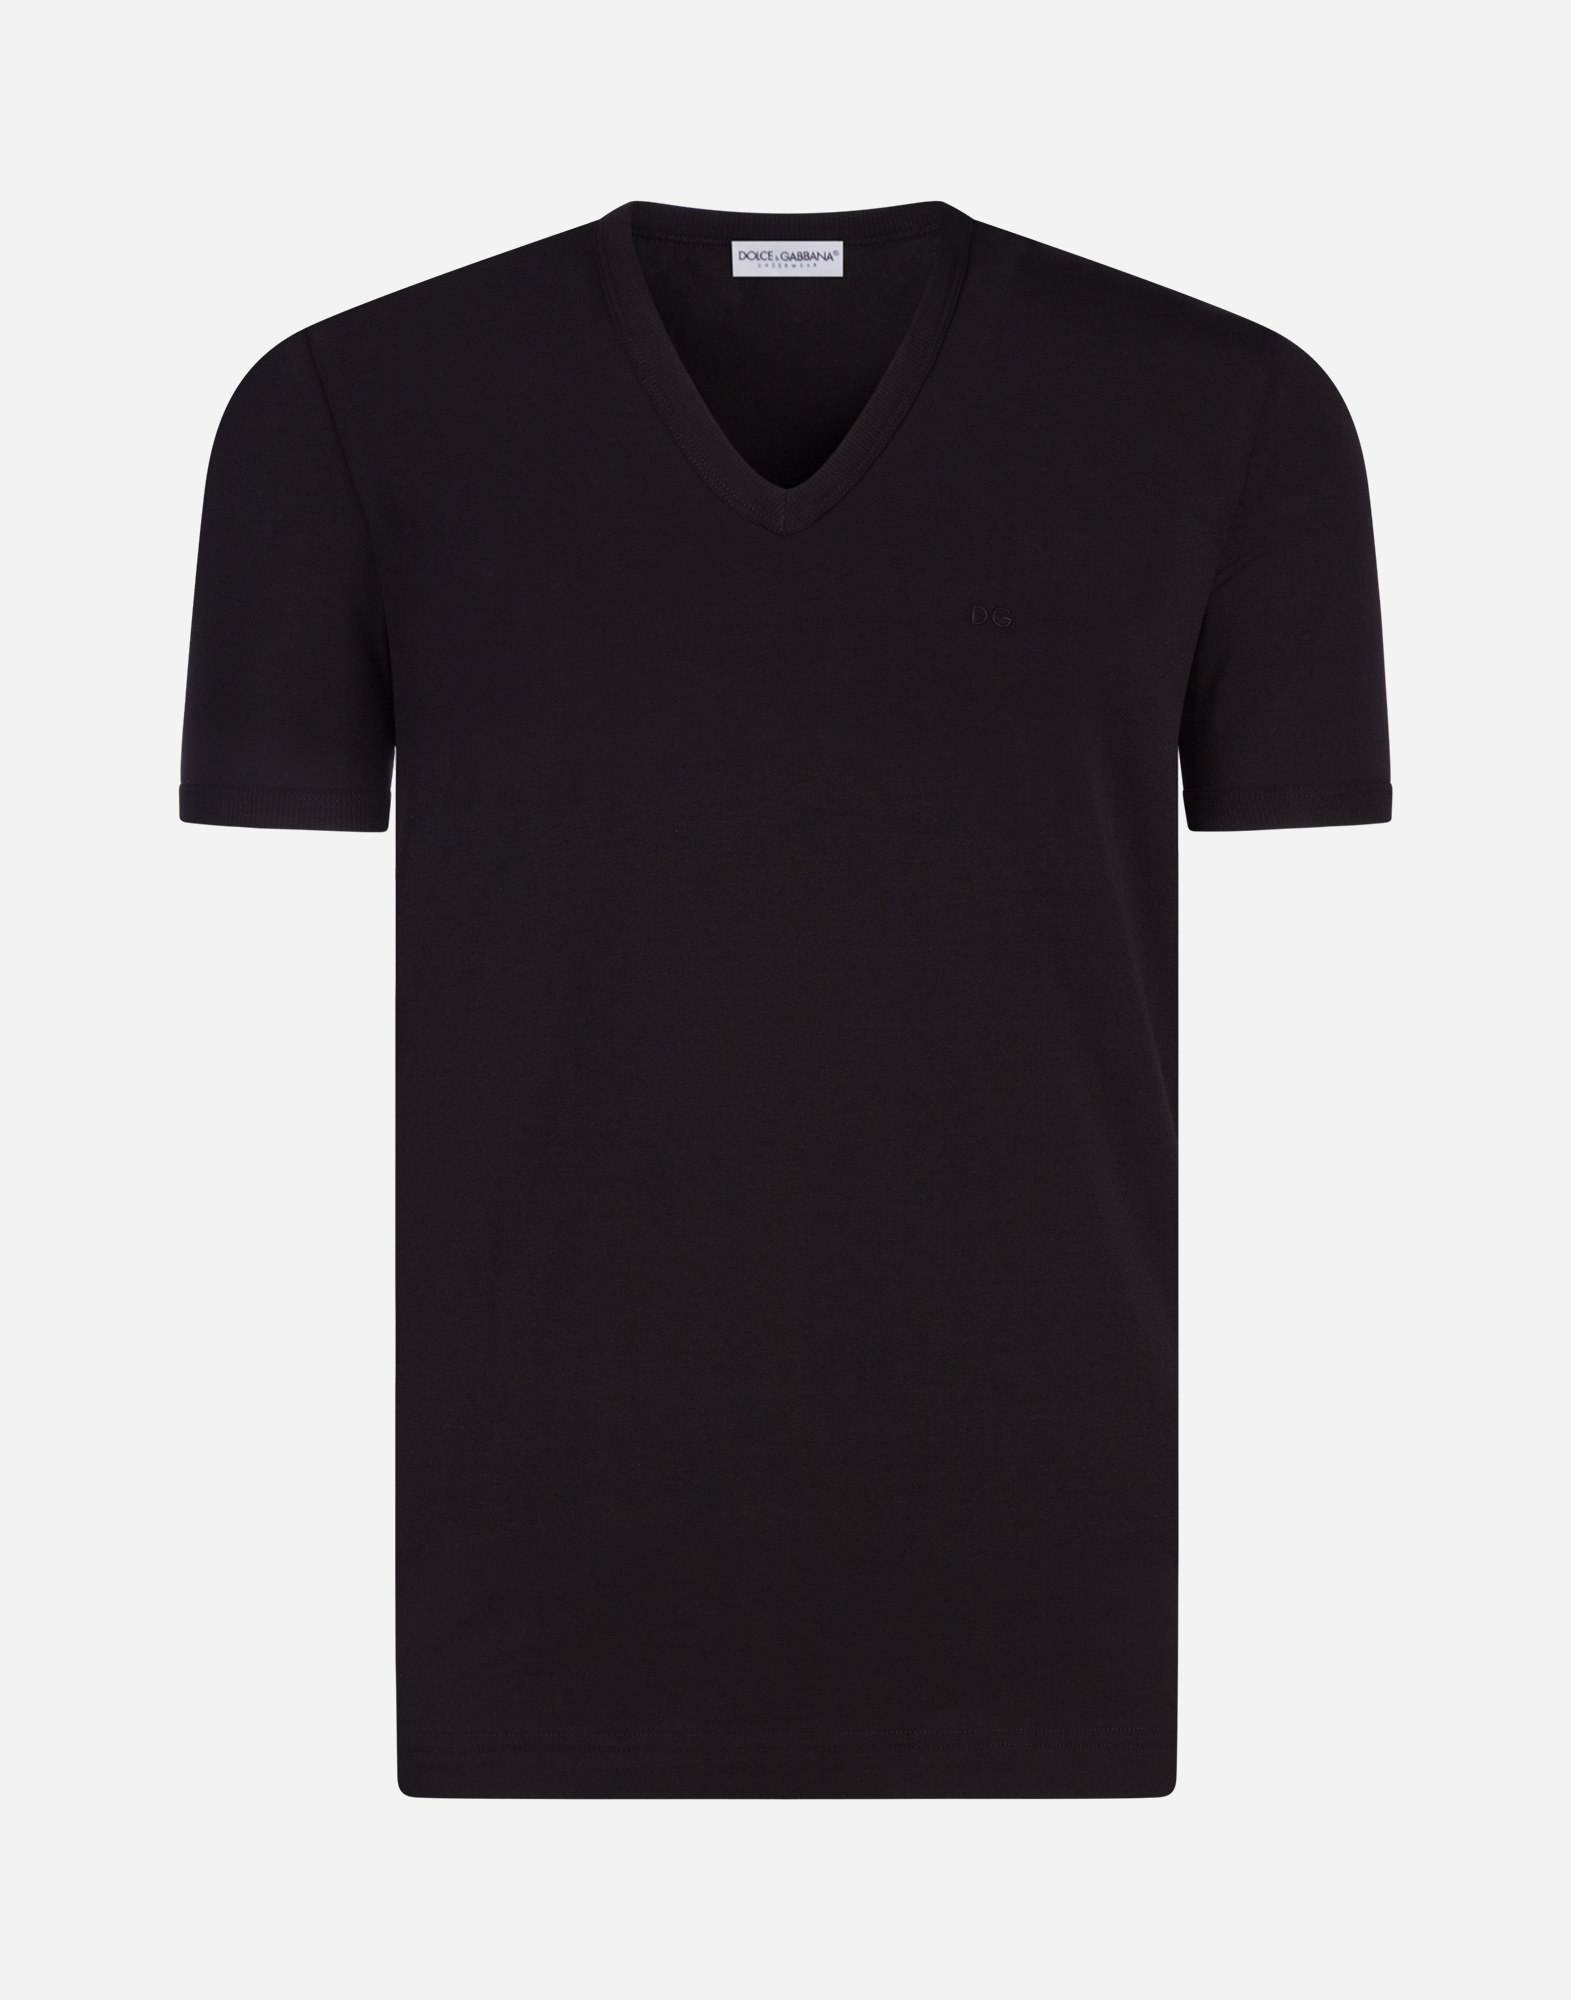 Dolce & Gabbana V-NECK STRETCH COTTON T-SHIRT